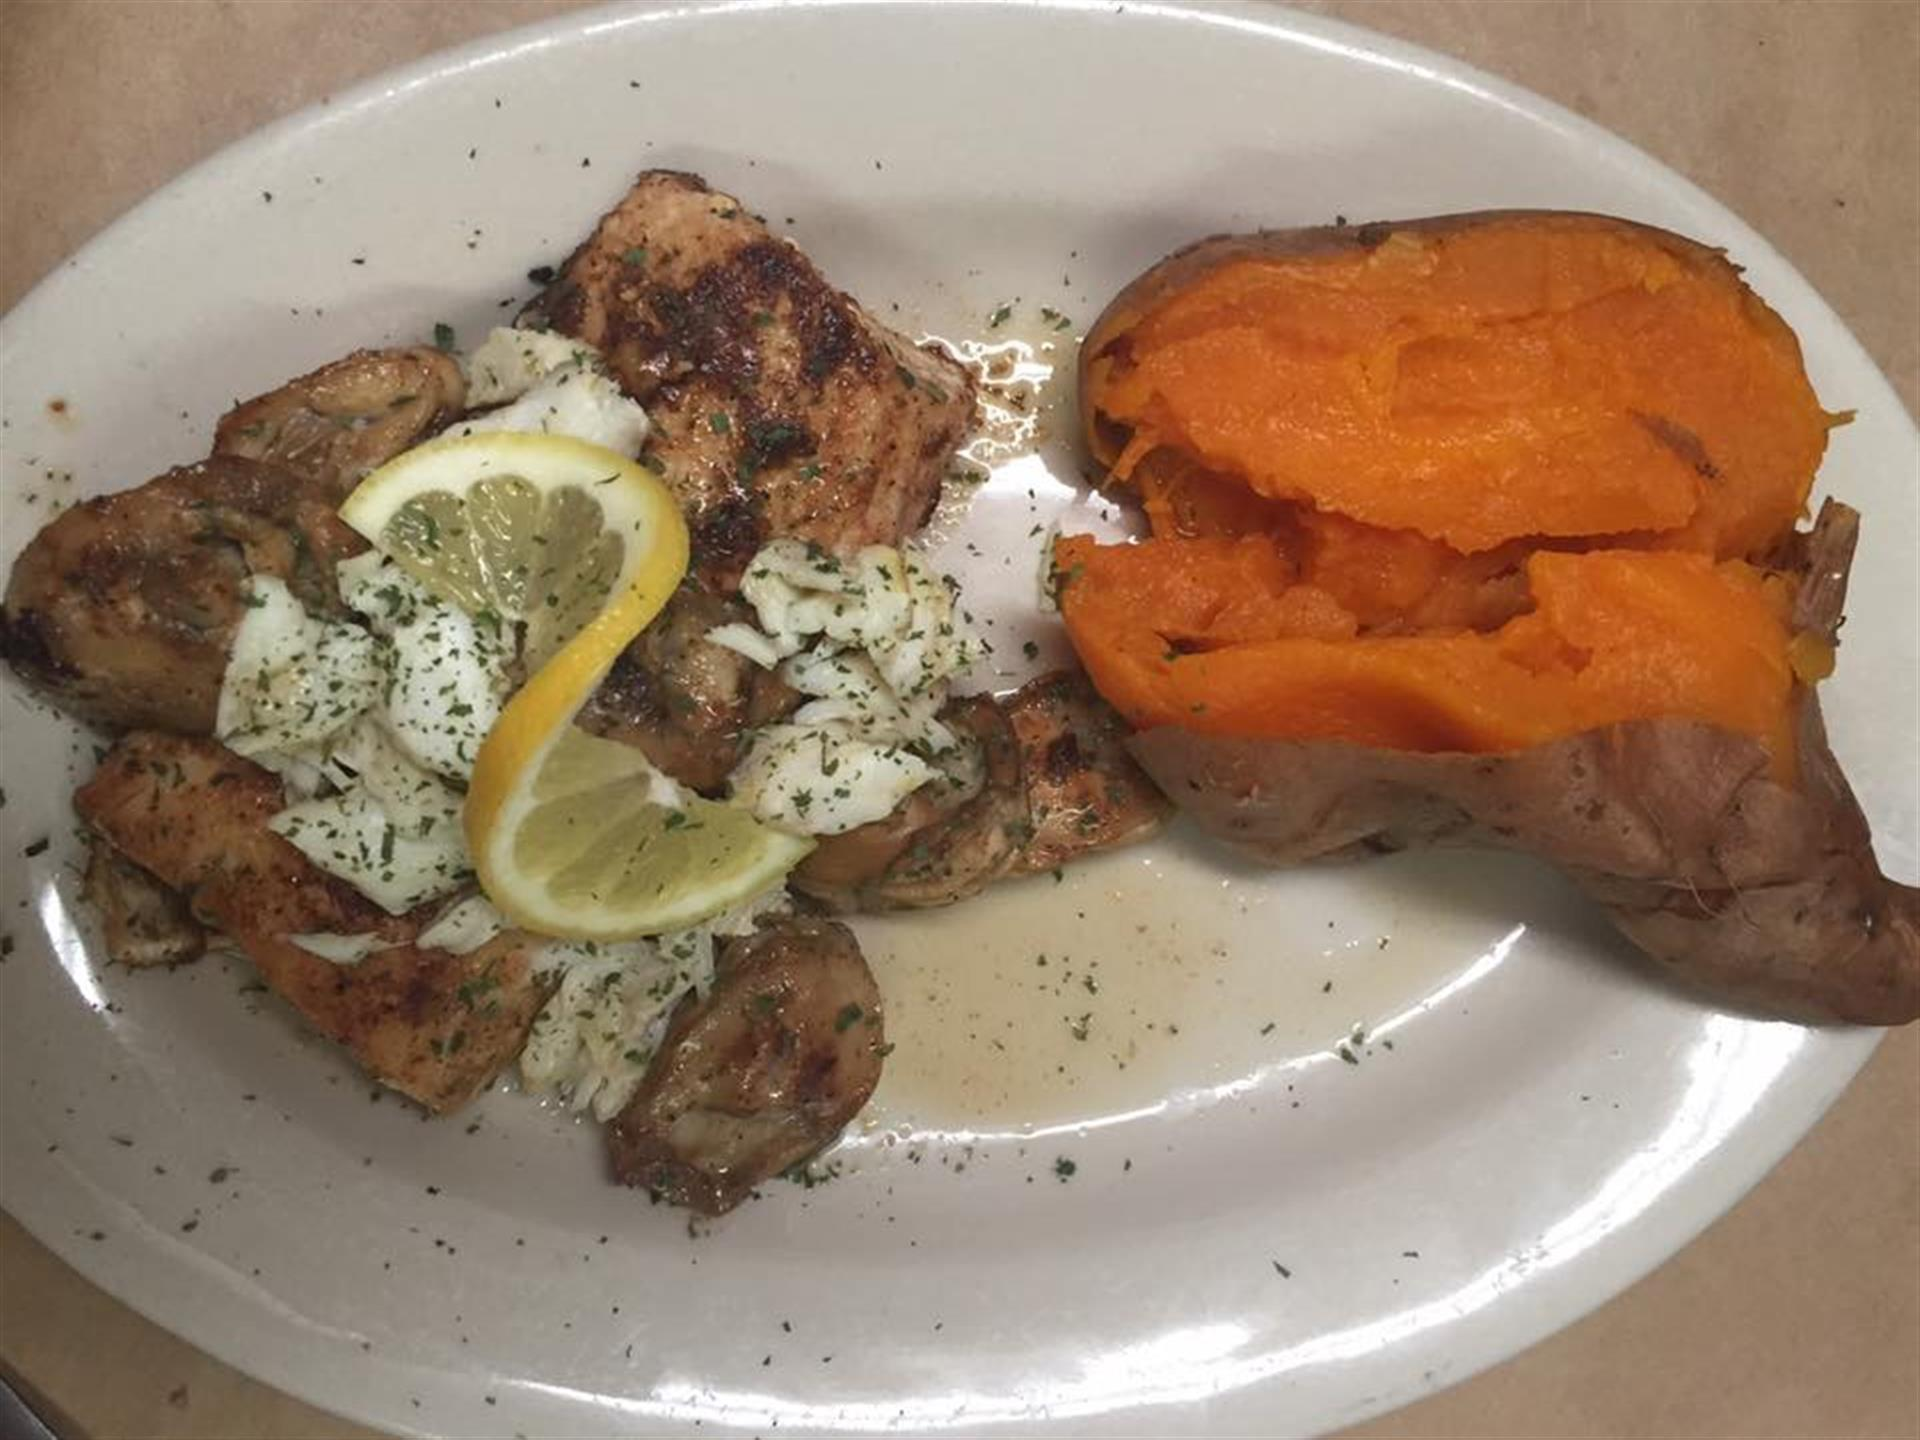 Grilled mahi, lump crabmeat, sweet potato